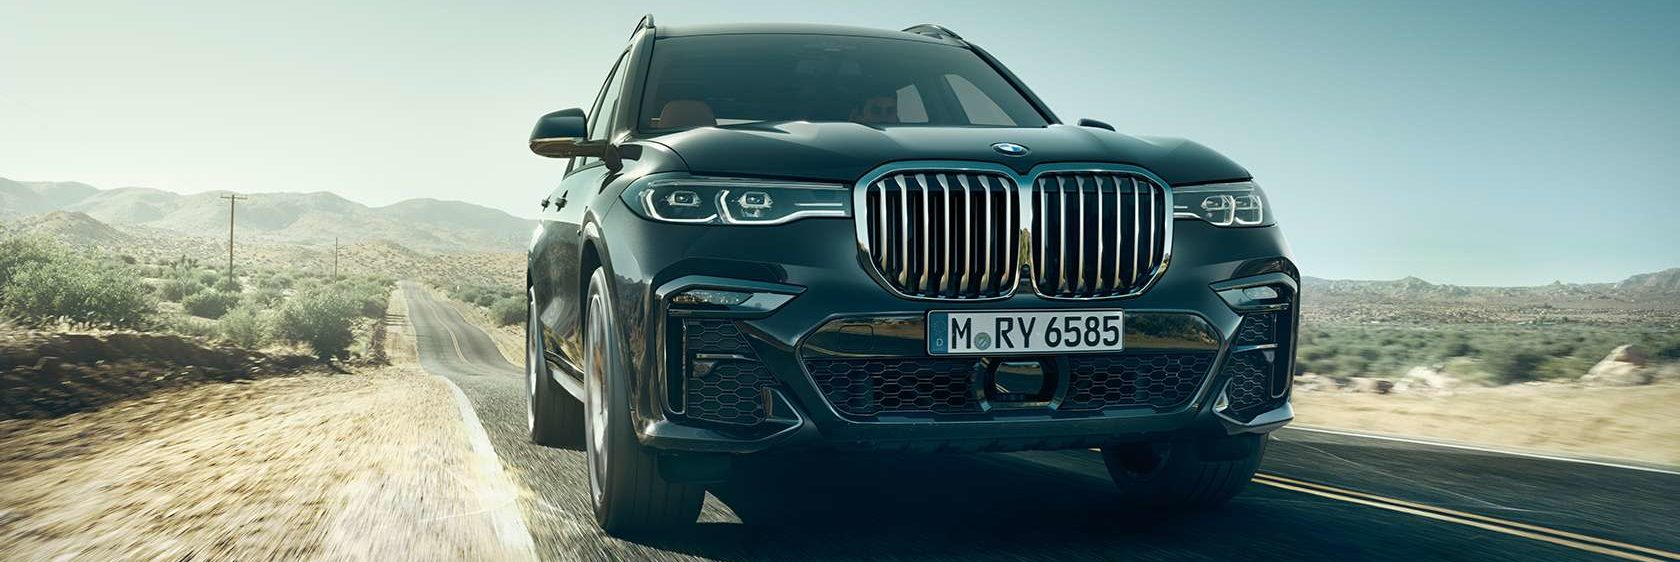 BMW X7 with laserlight headlights driving on a country road